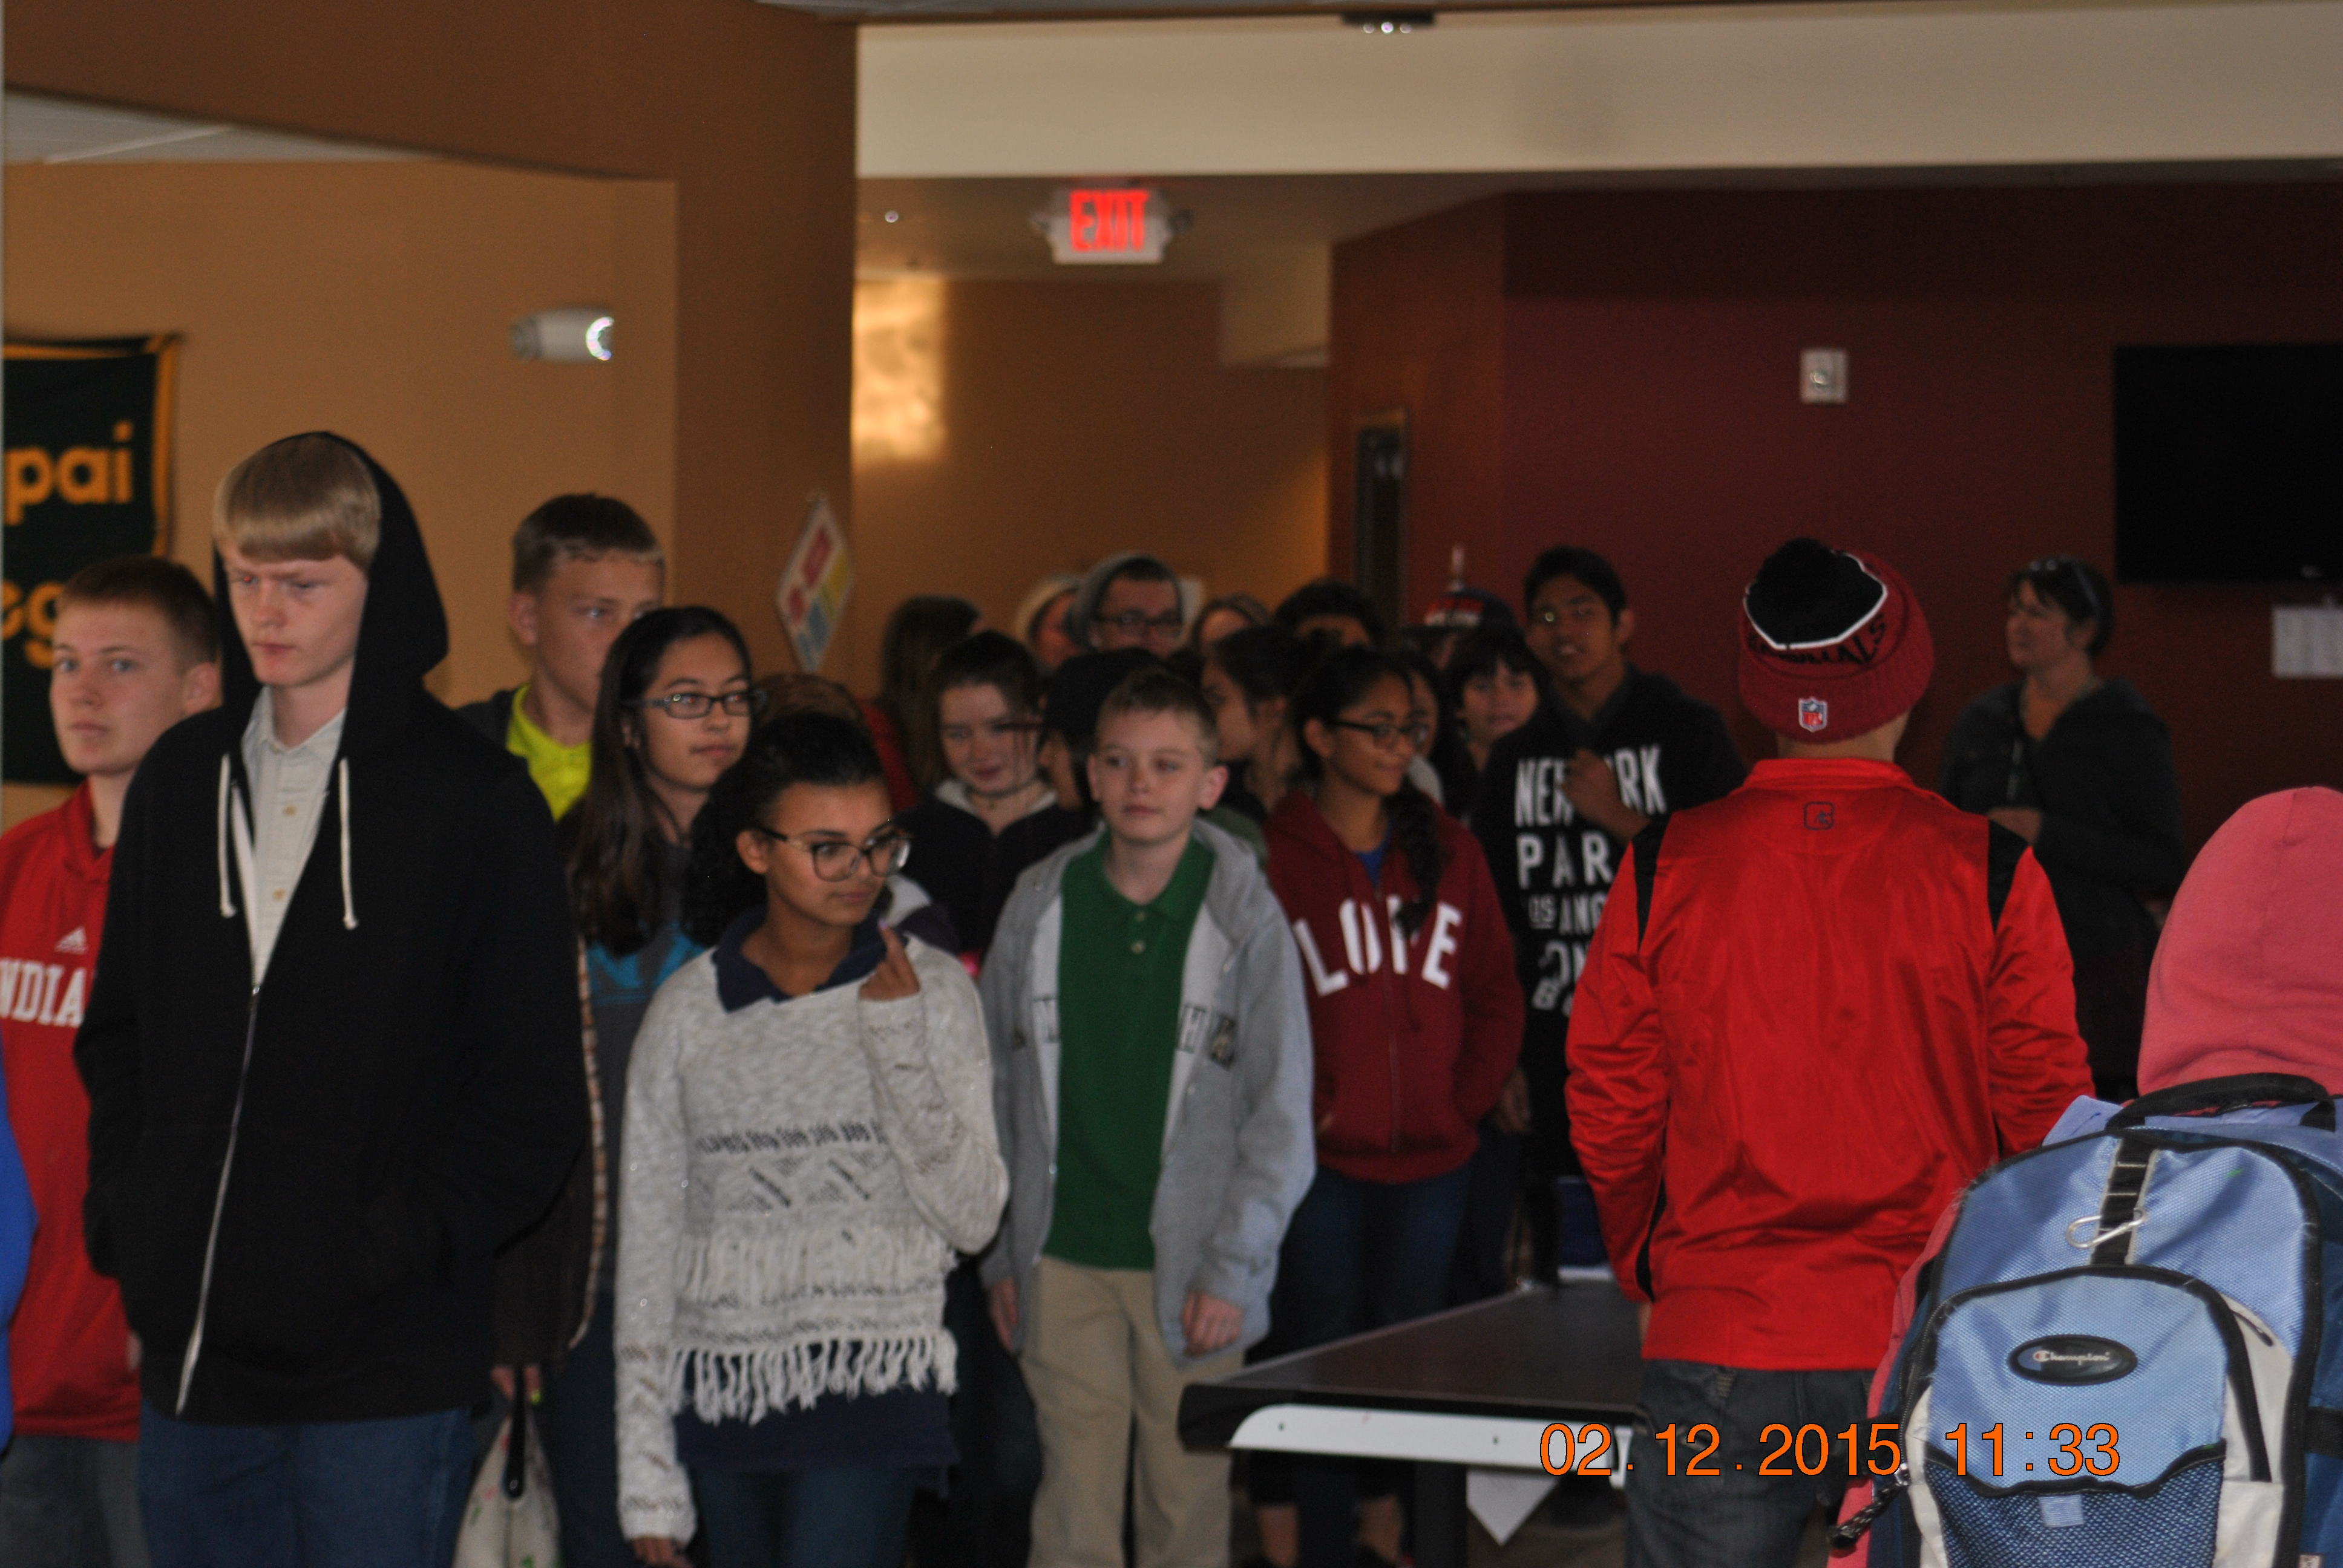 Eighth grade students on a Verde Valley campus tour, in the student union.